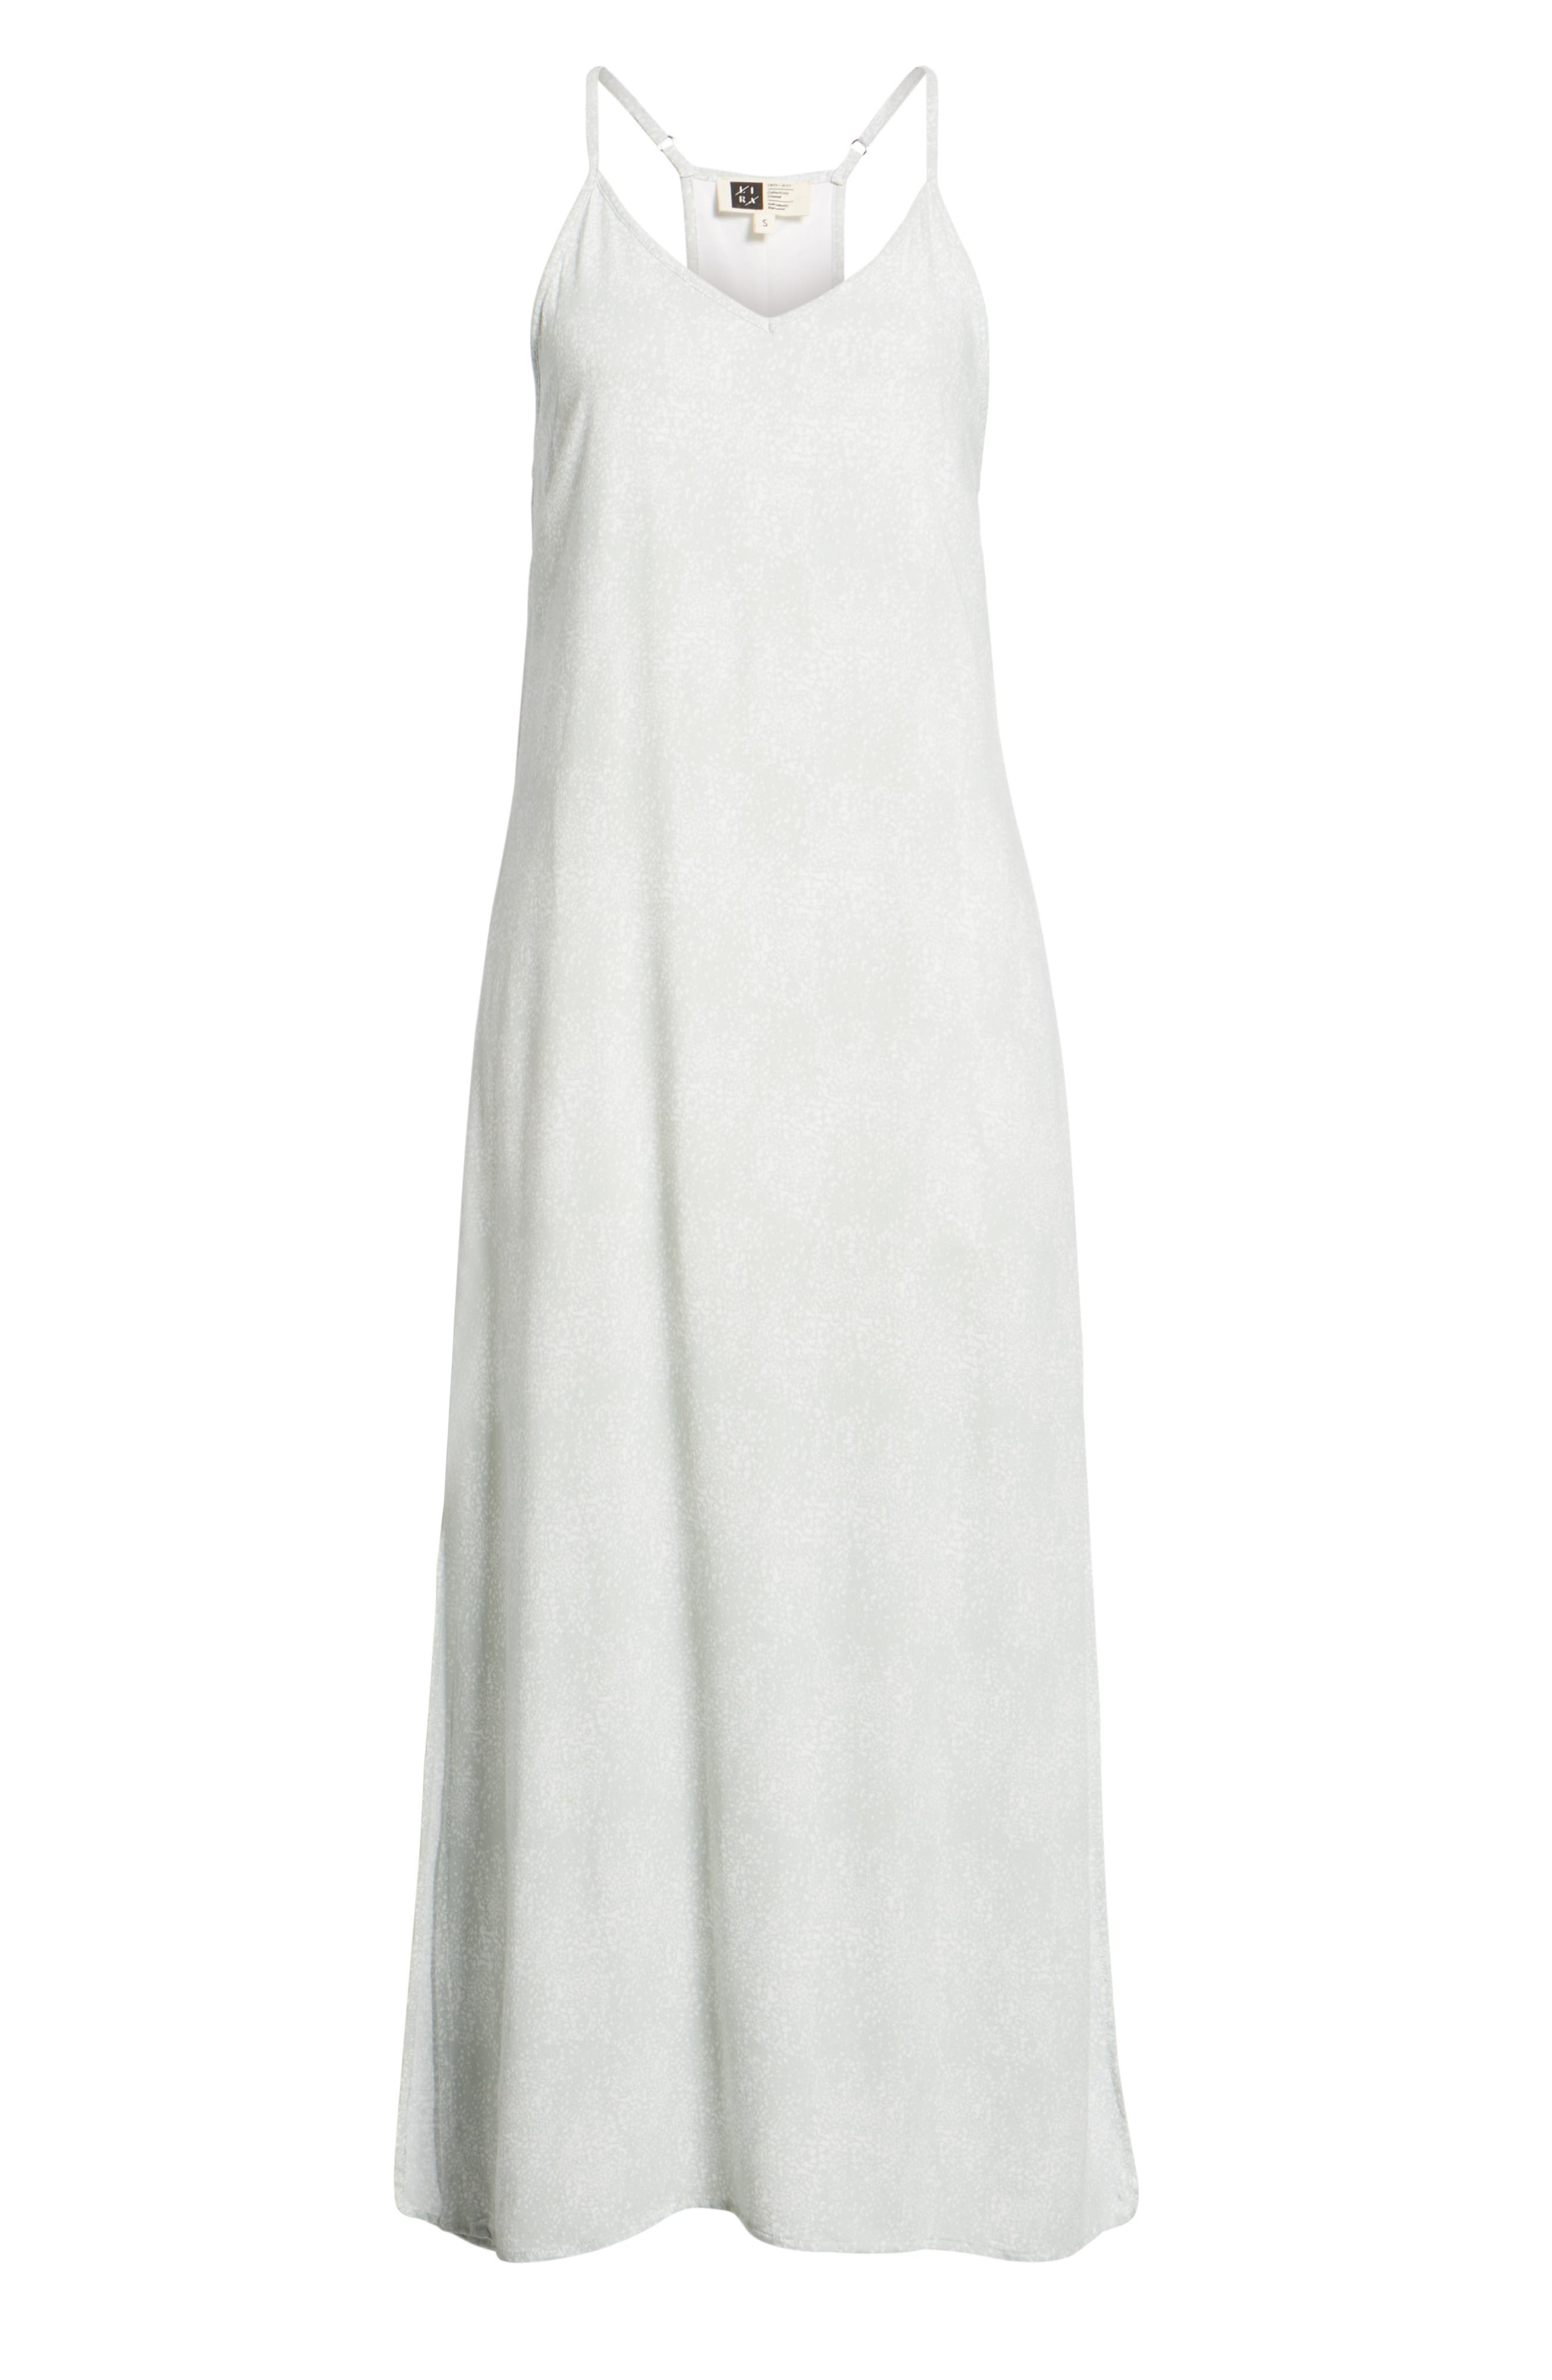 Misty Morning Maxi Dress,                             Alternate thumbnail 7, color,                             DEW